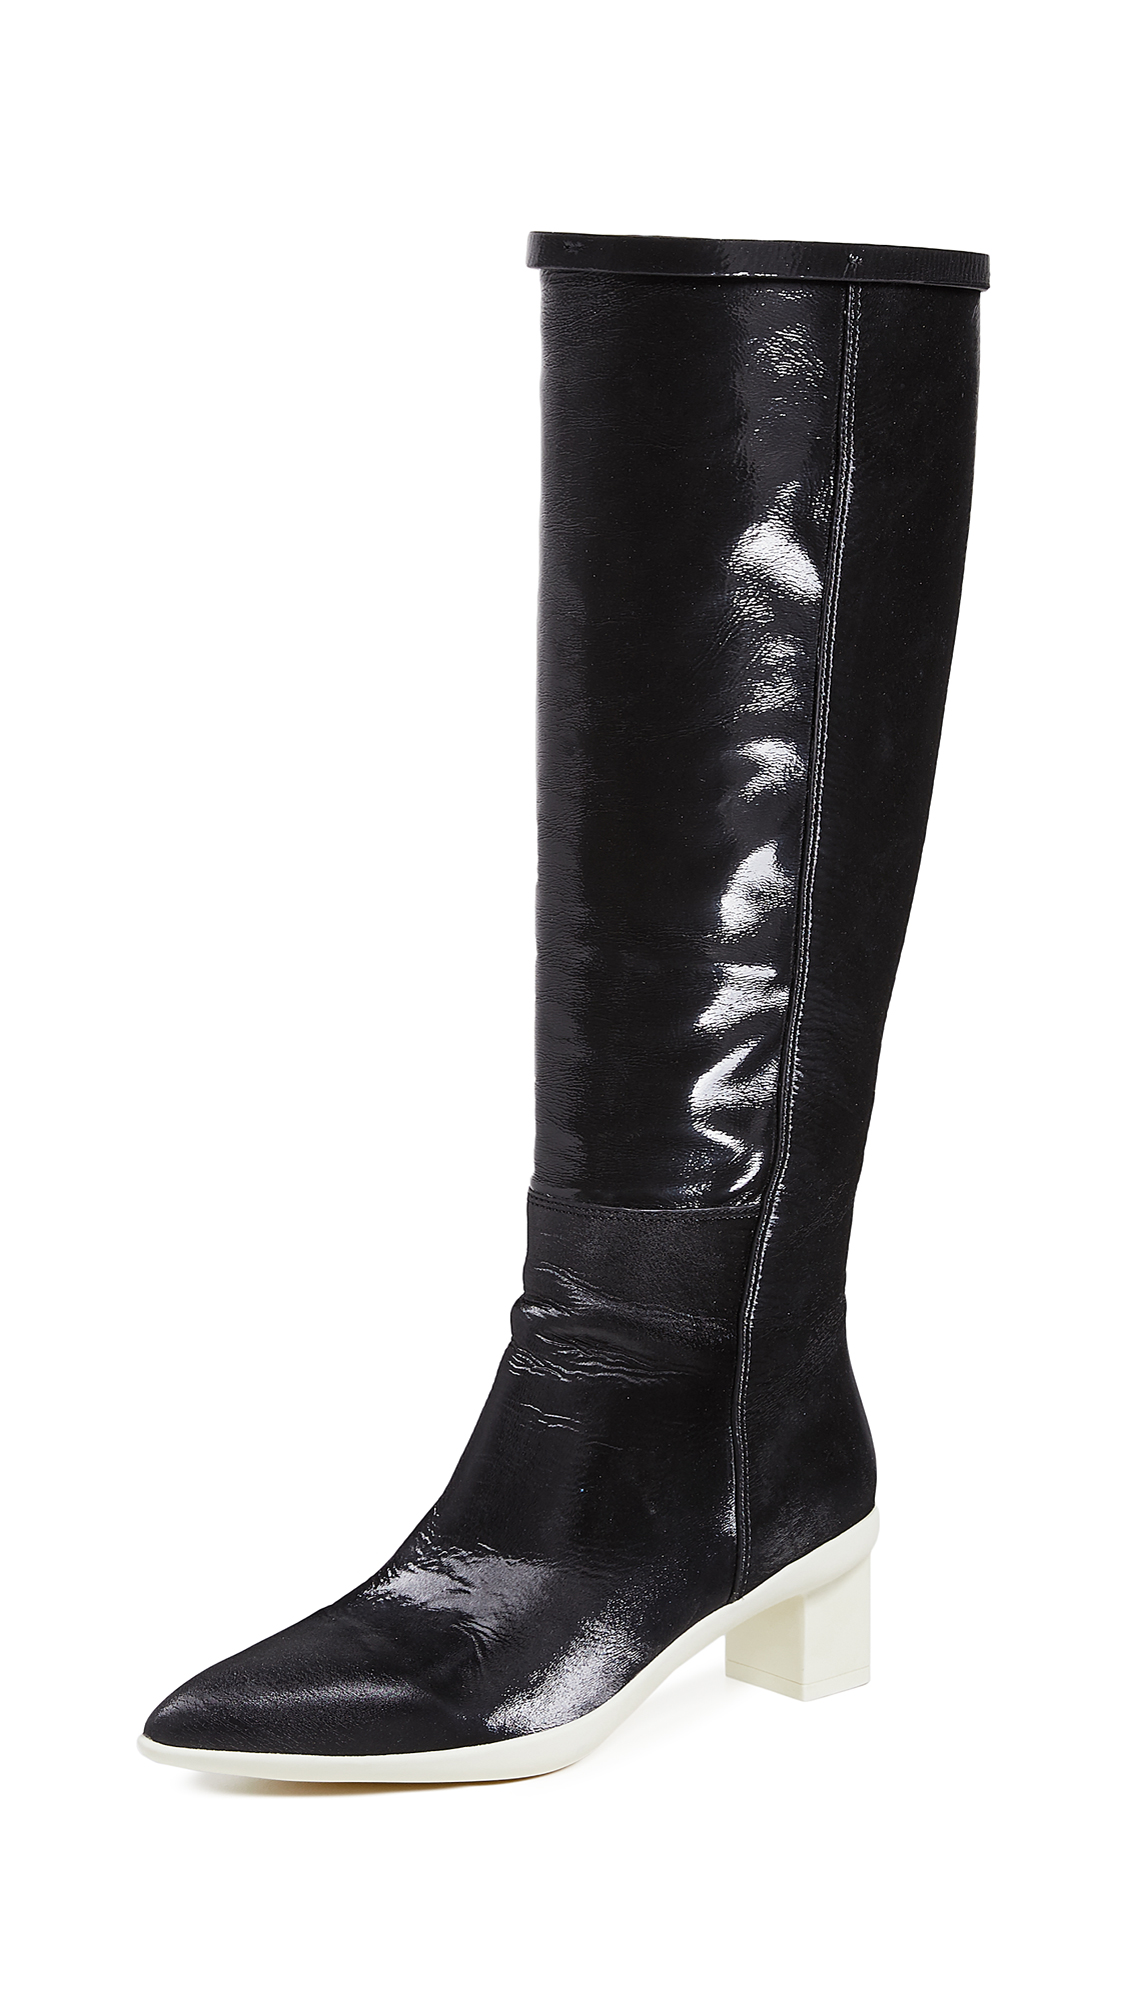 Stuart Weitzman Claude 45mm Boots - Pitch Black